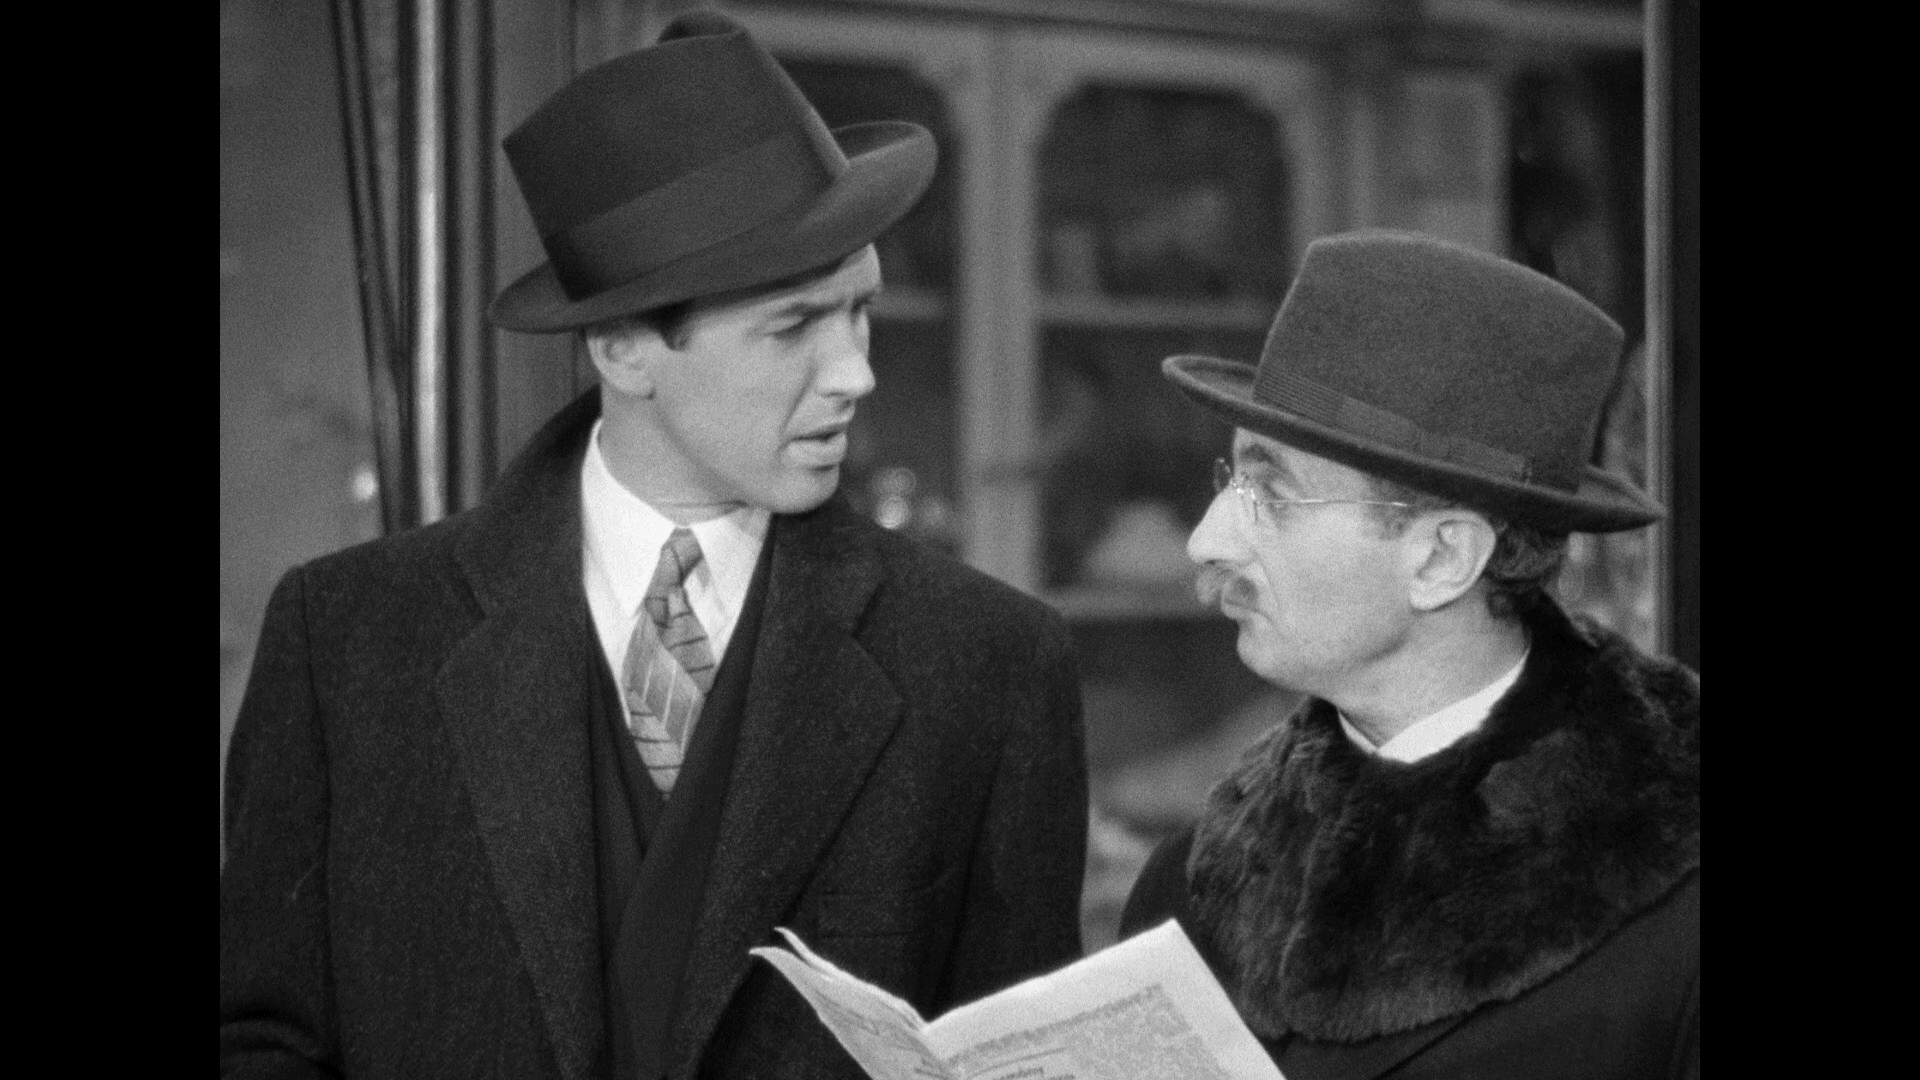 The Shop Around The Corner (1940) [Warner Archive Blu-ray review] 8